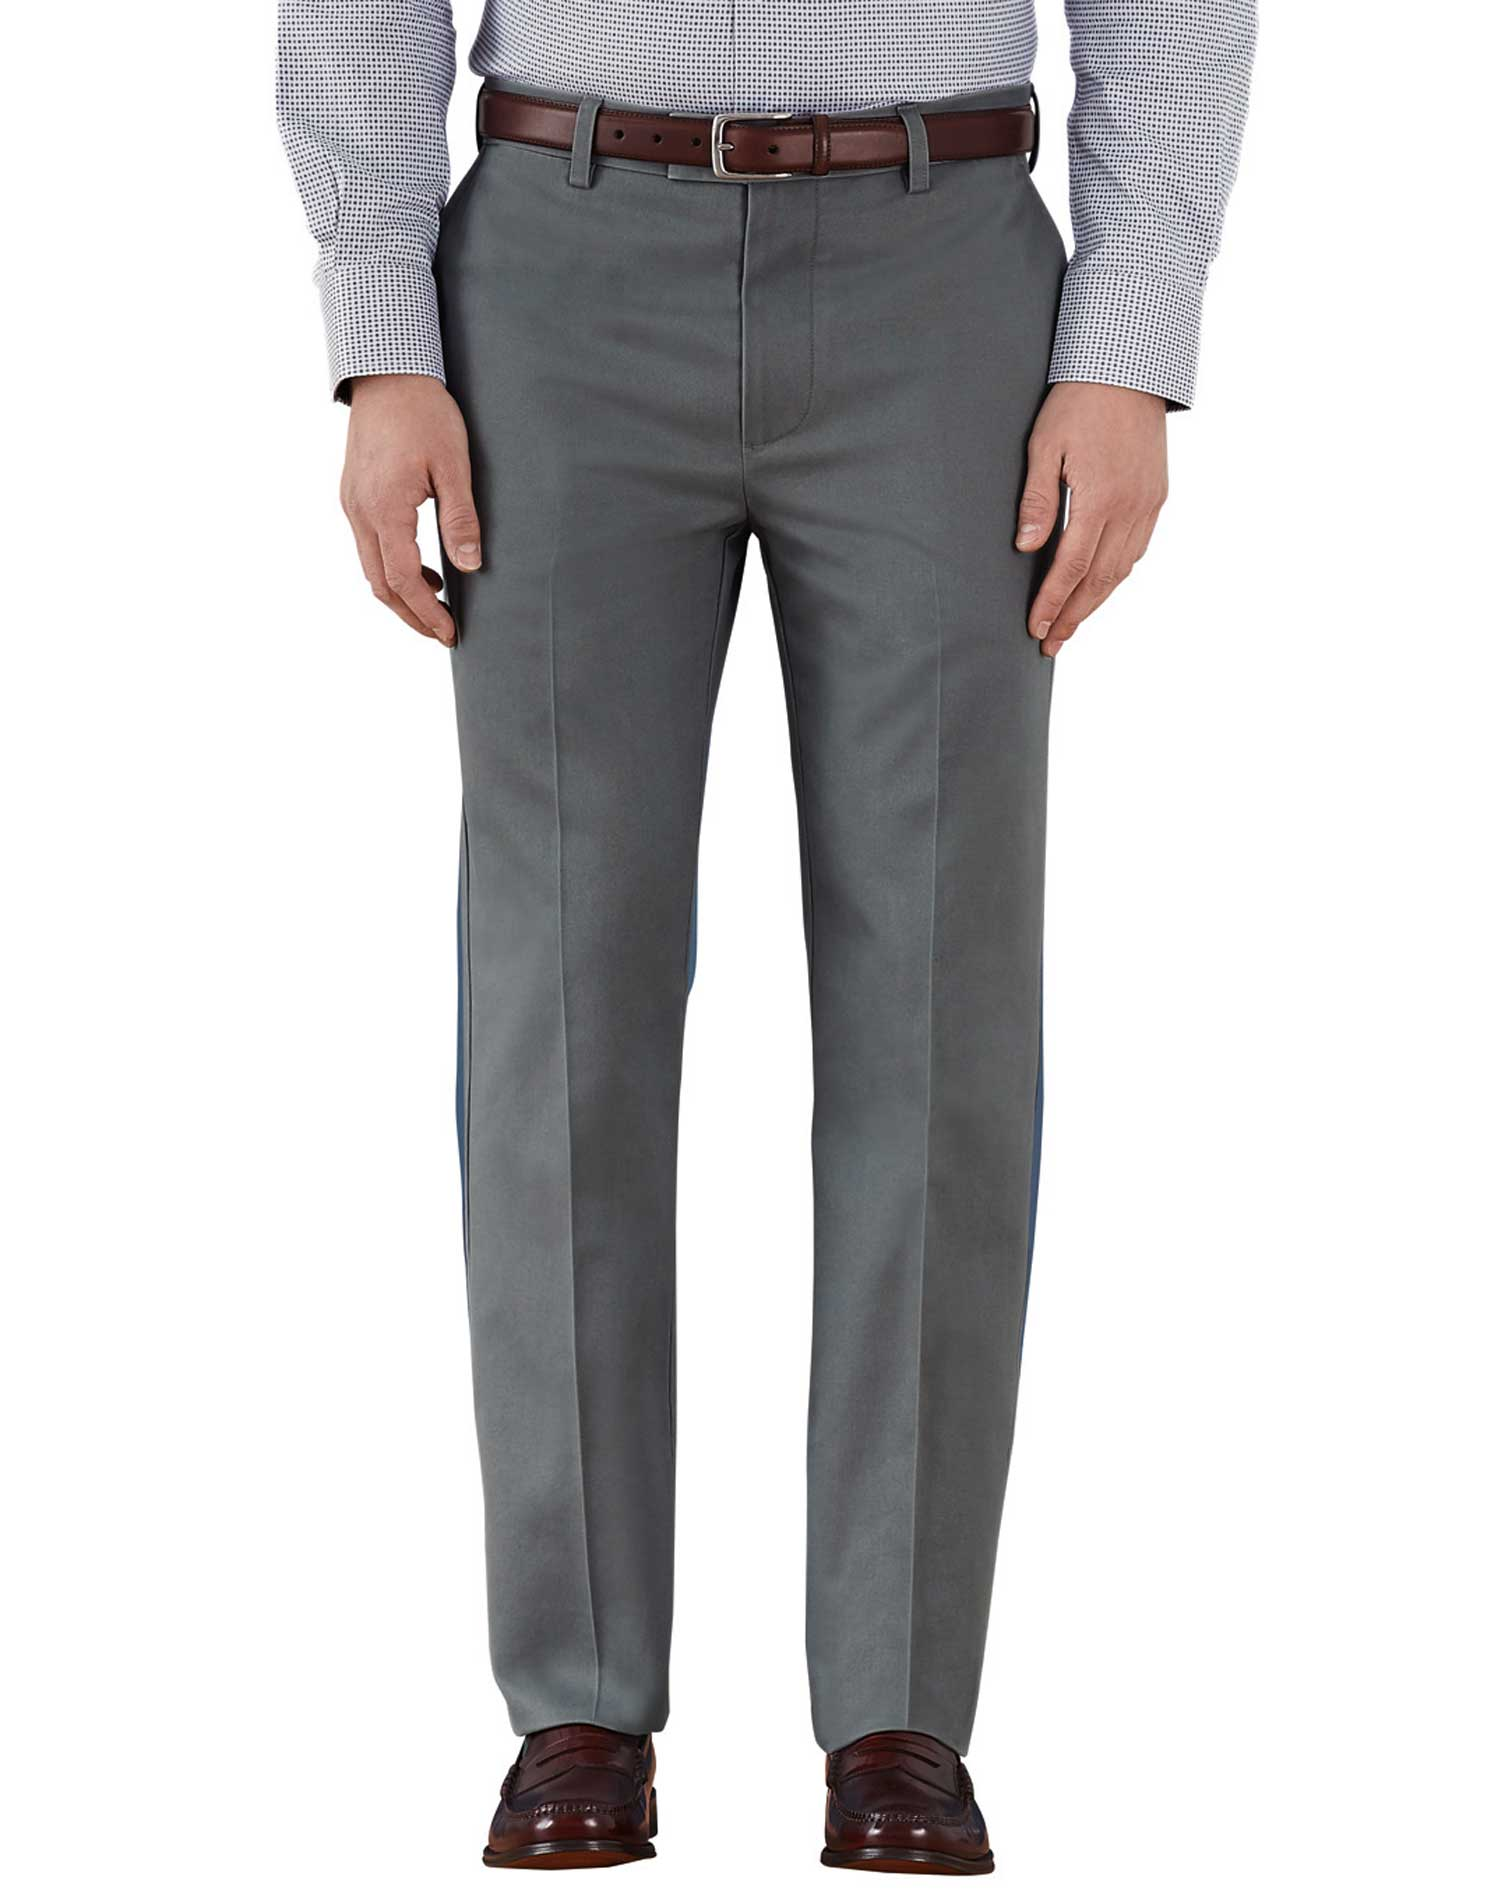 Grey Slim Fit Flat Front Washed Cotton Chino Trousers Size W36 L32 by Charles Tyrwhitt